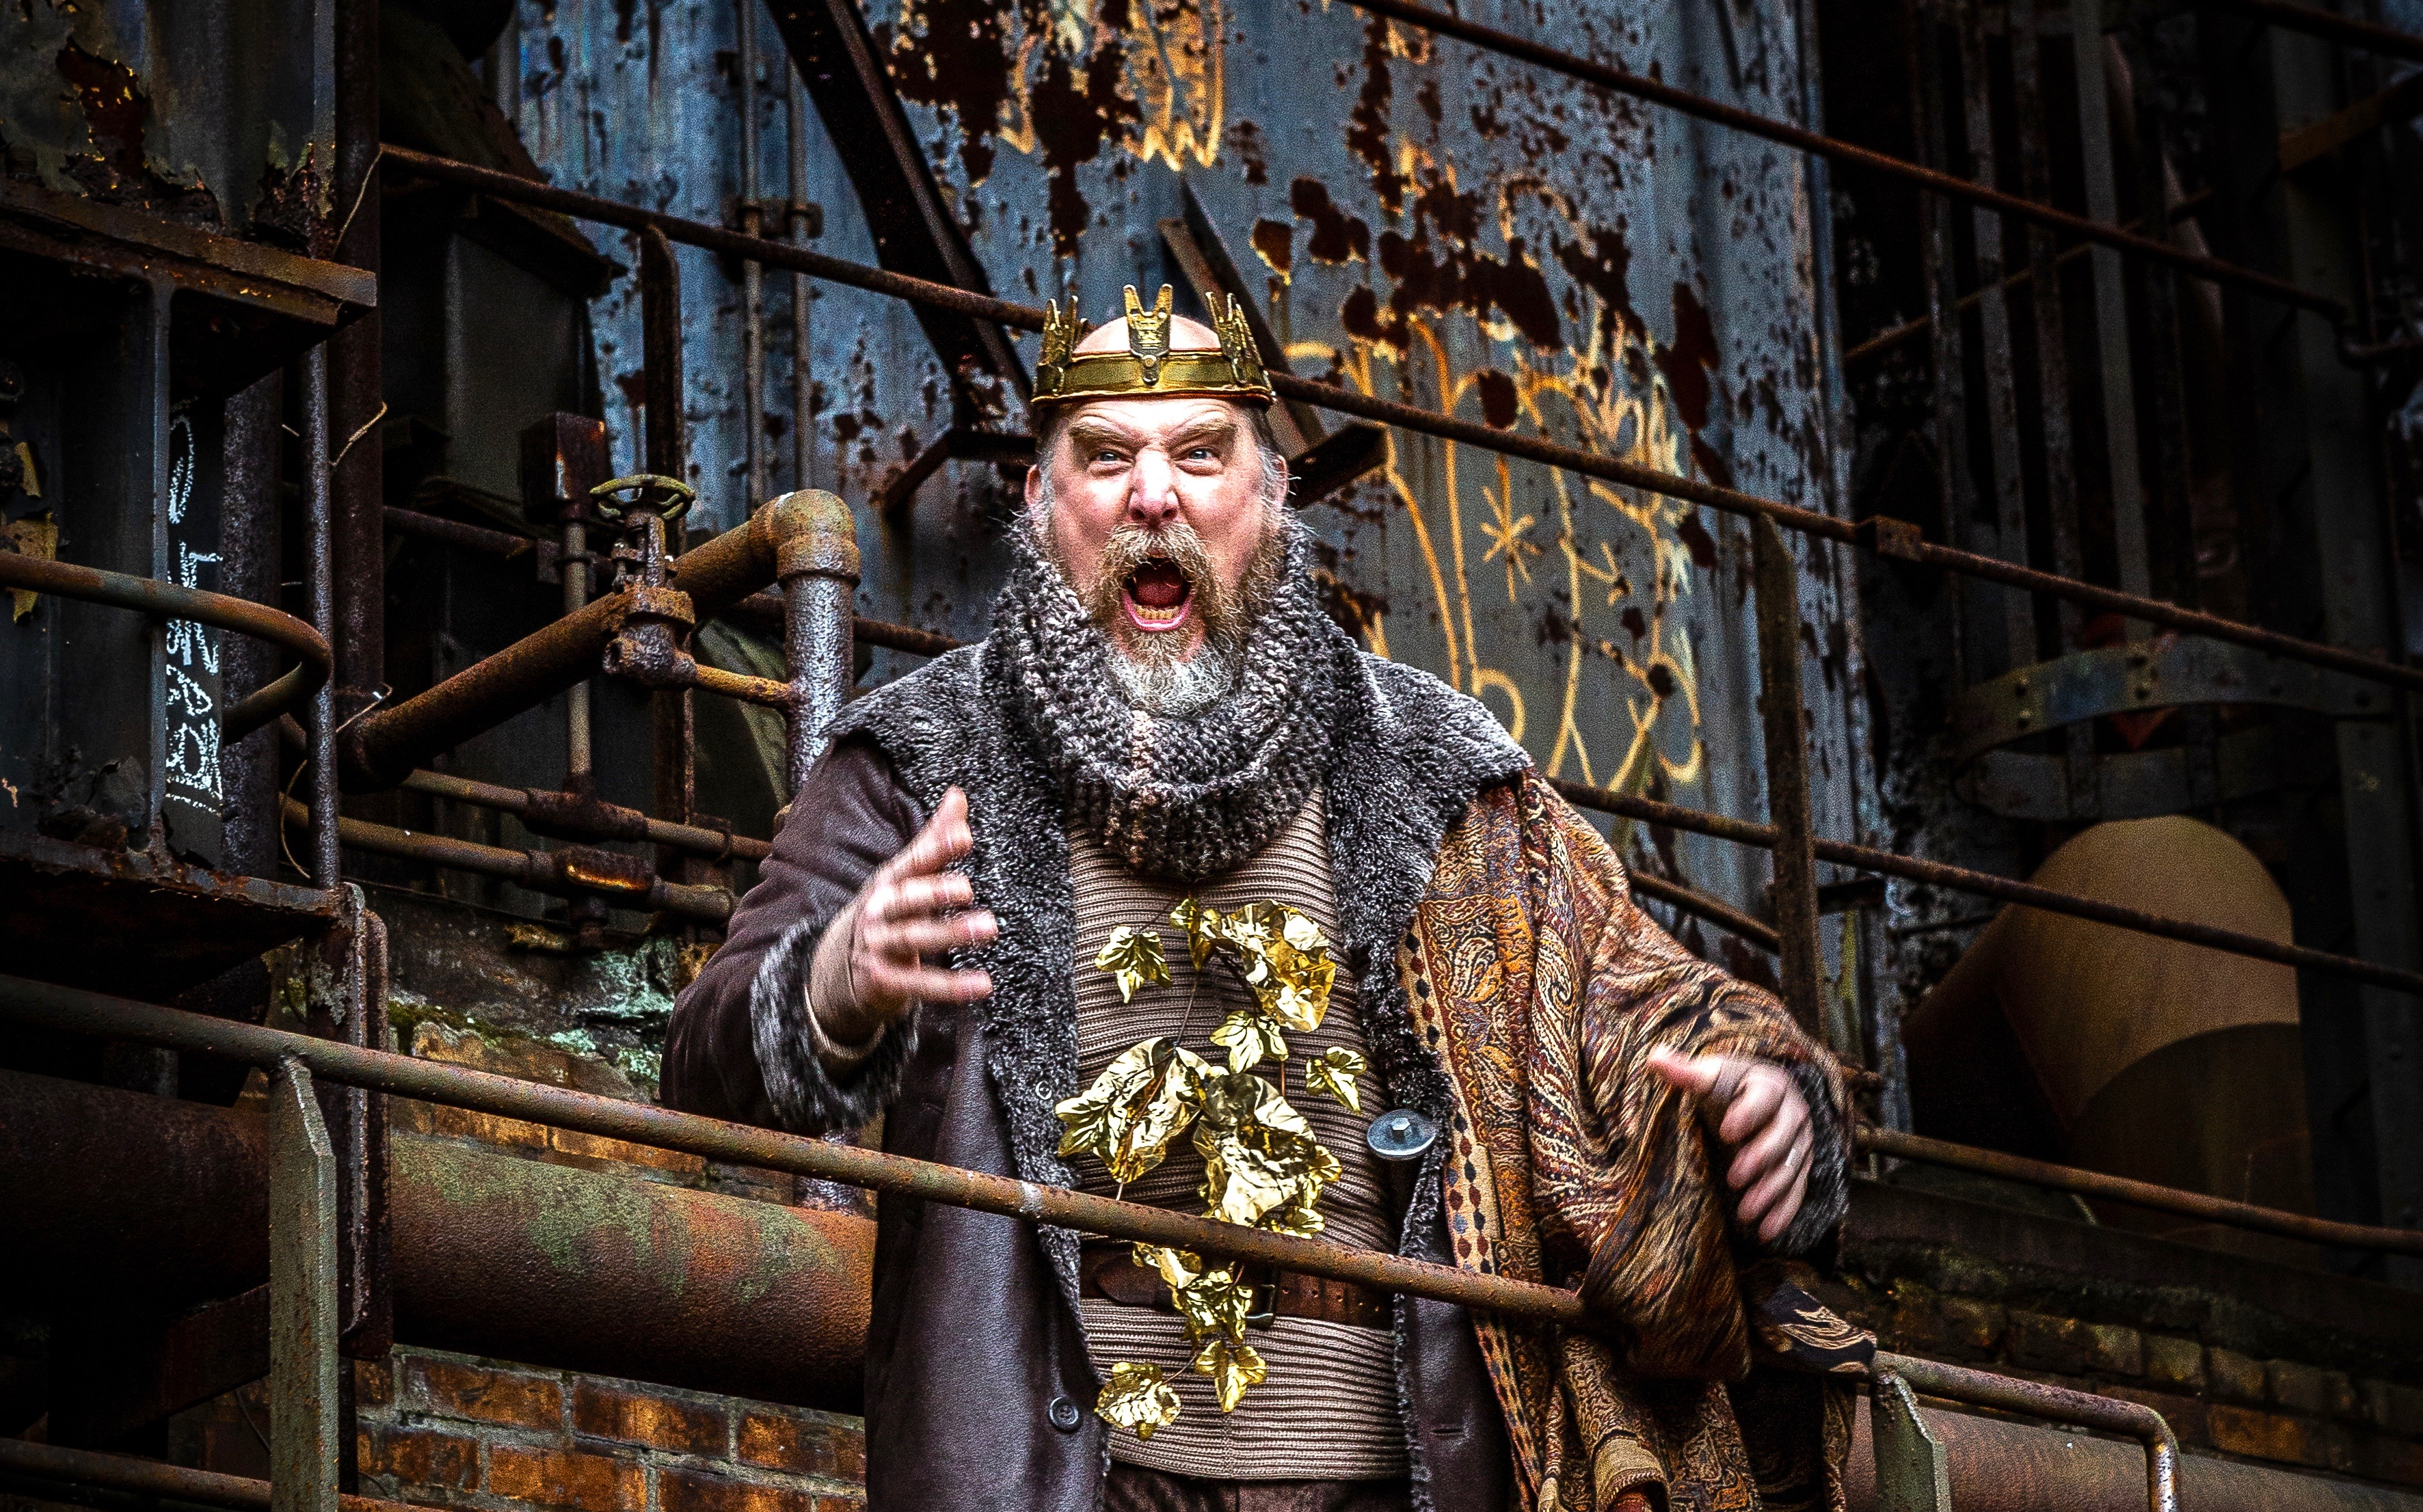 Quantum Theatre's industrial-strength 'King Lear,' staged at the Carrie Furnaces, is one highlight of an adventurous month in Pittsburgh theater. Jeffrey Carpenter roars as Lear. (photo; Heather Mull Photography)